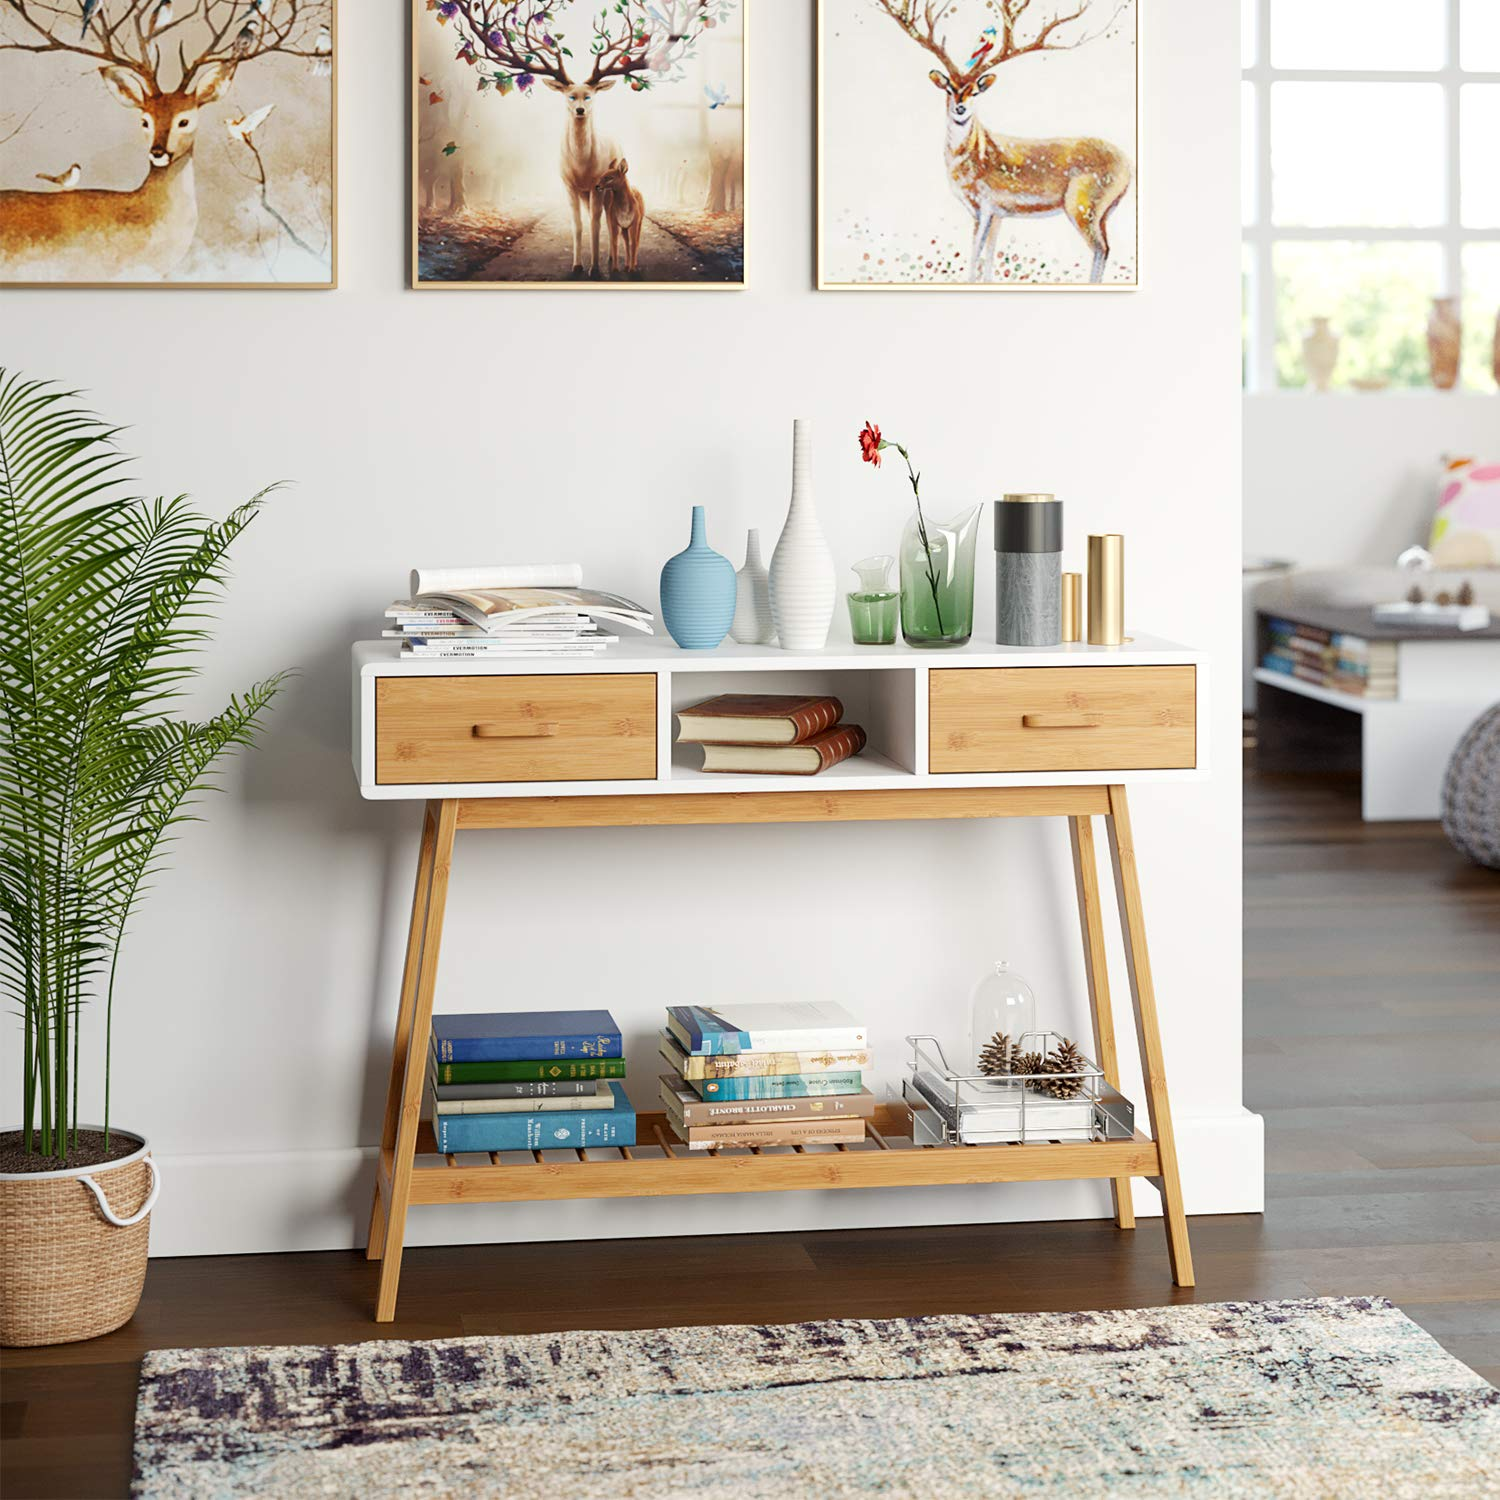 scandinavian-entryway-console-table-with-storage-and-drawers-in-wood-and-white